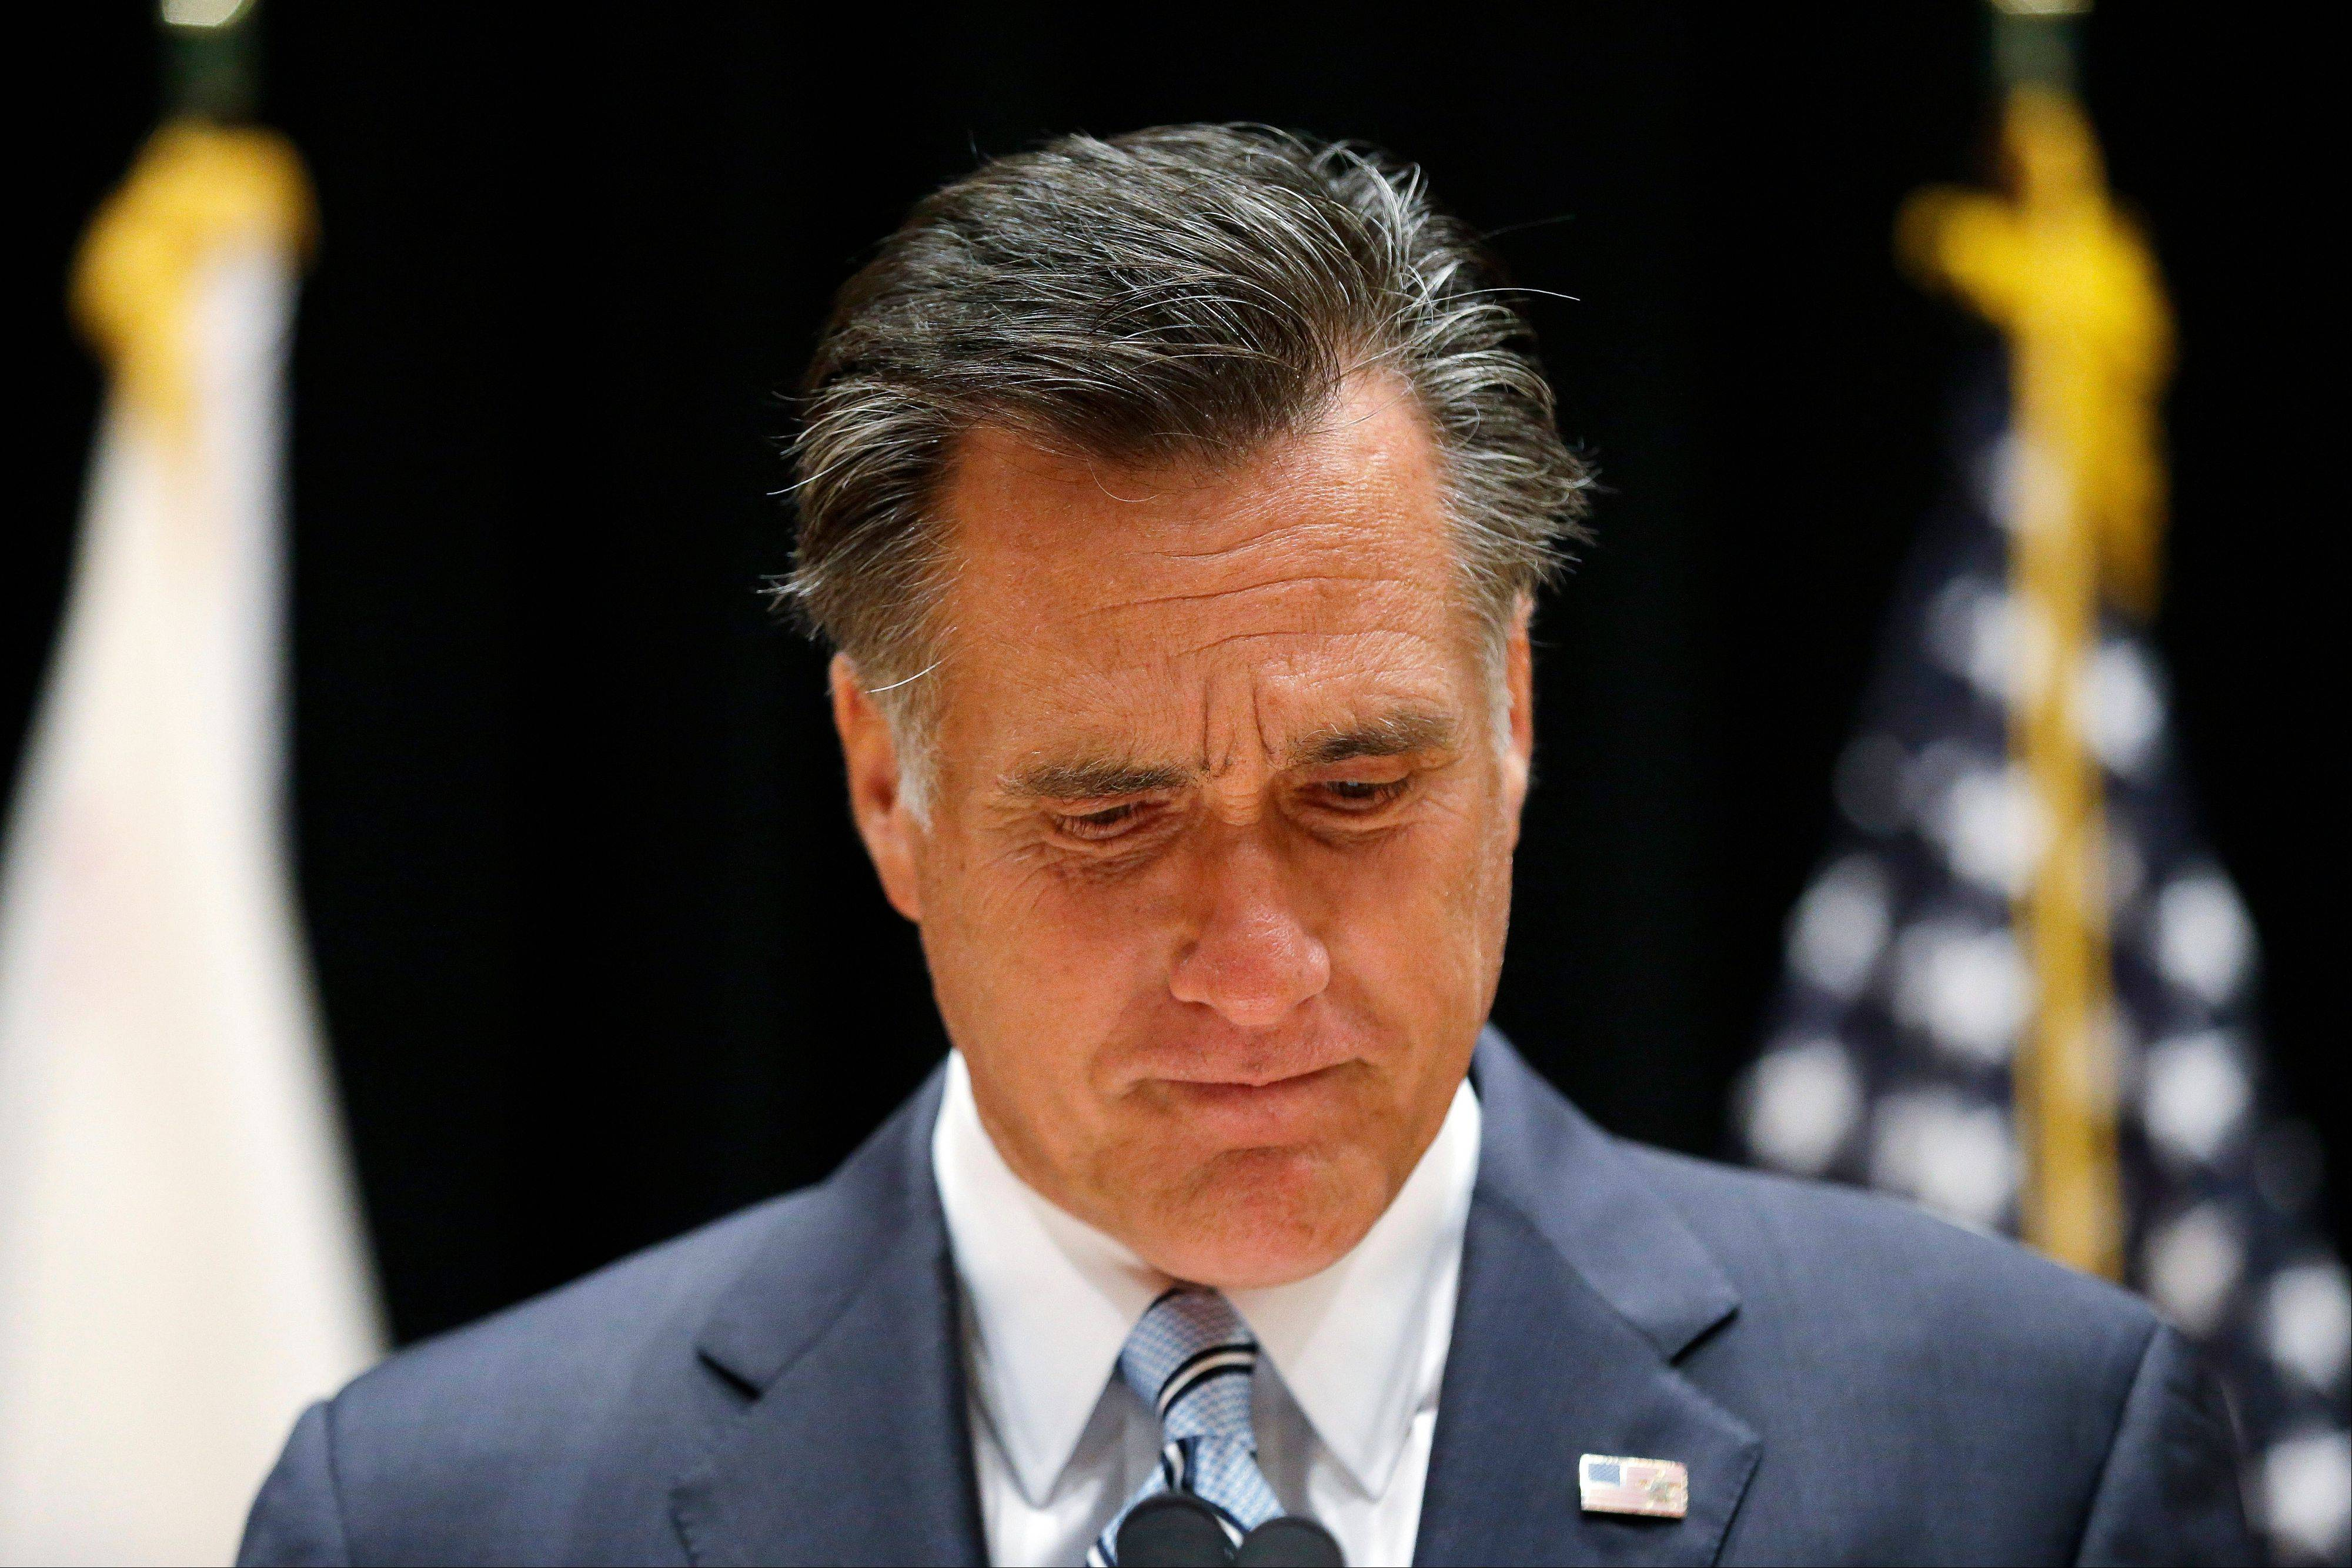 Republican presidential candidate and former Massachusetts Gov. Mitt Romney speaks to reporters about the secretly taped video from one of his campaign fundraising events in Costa Mesa, Calif., Monday, Sept. 17, 2012.